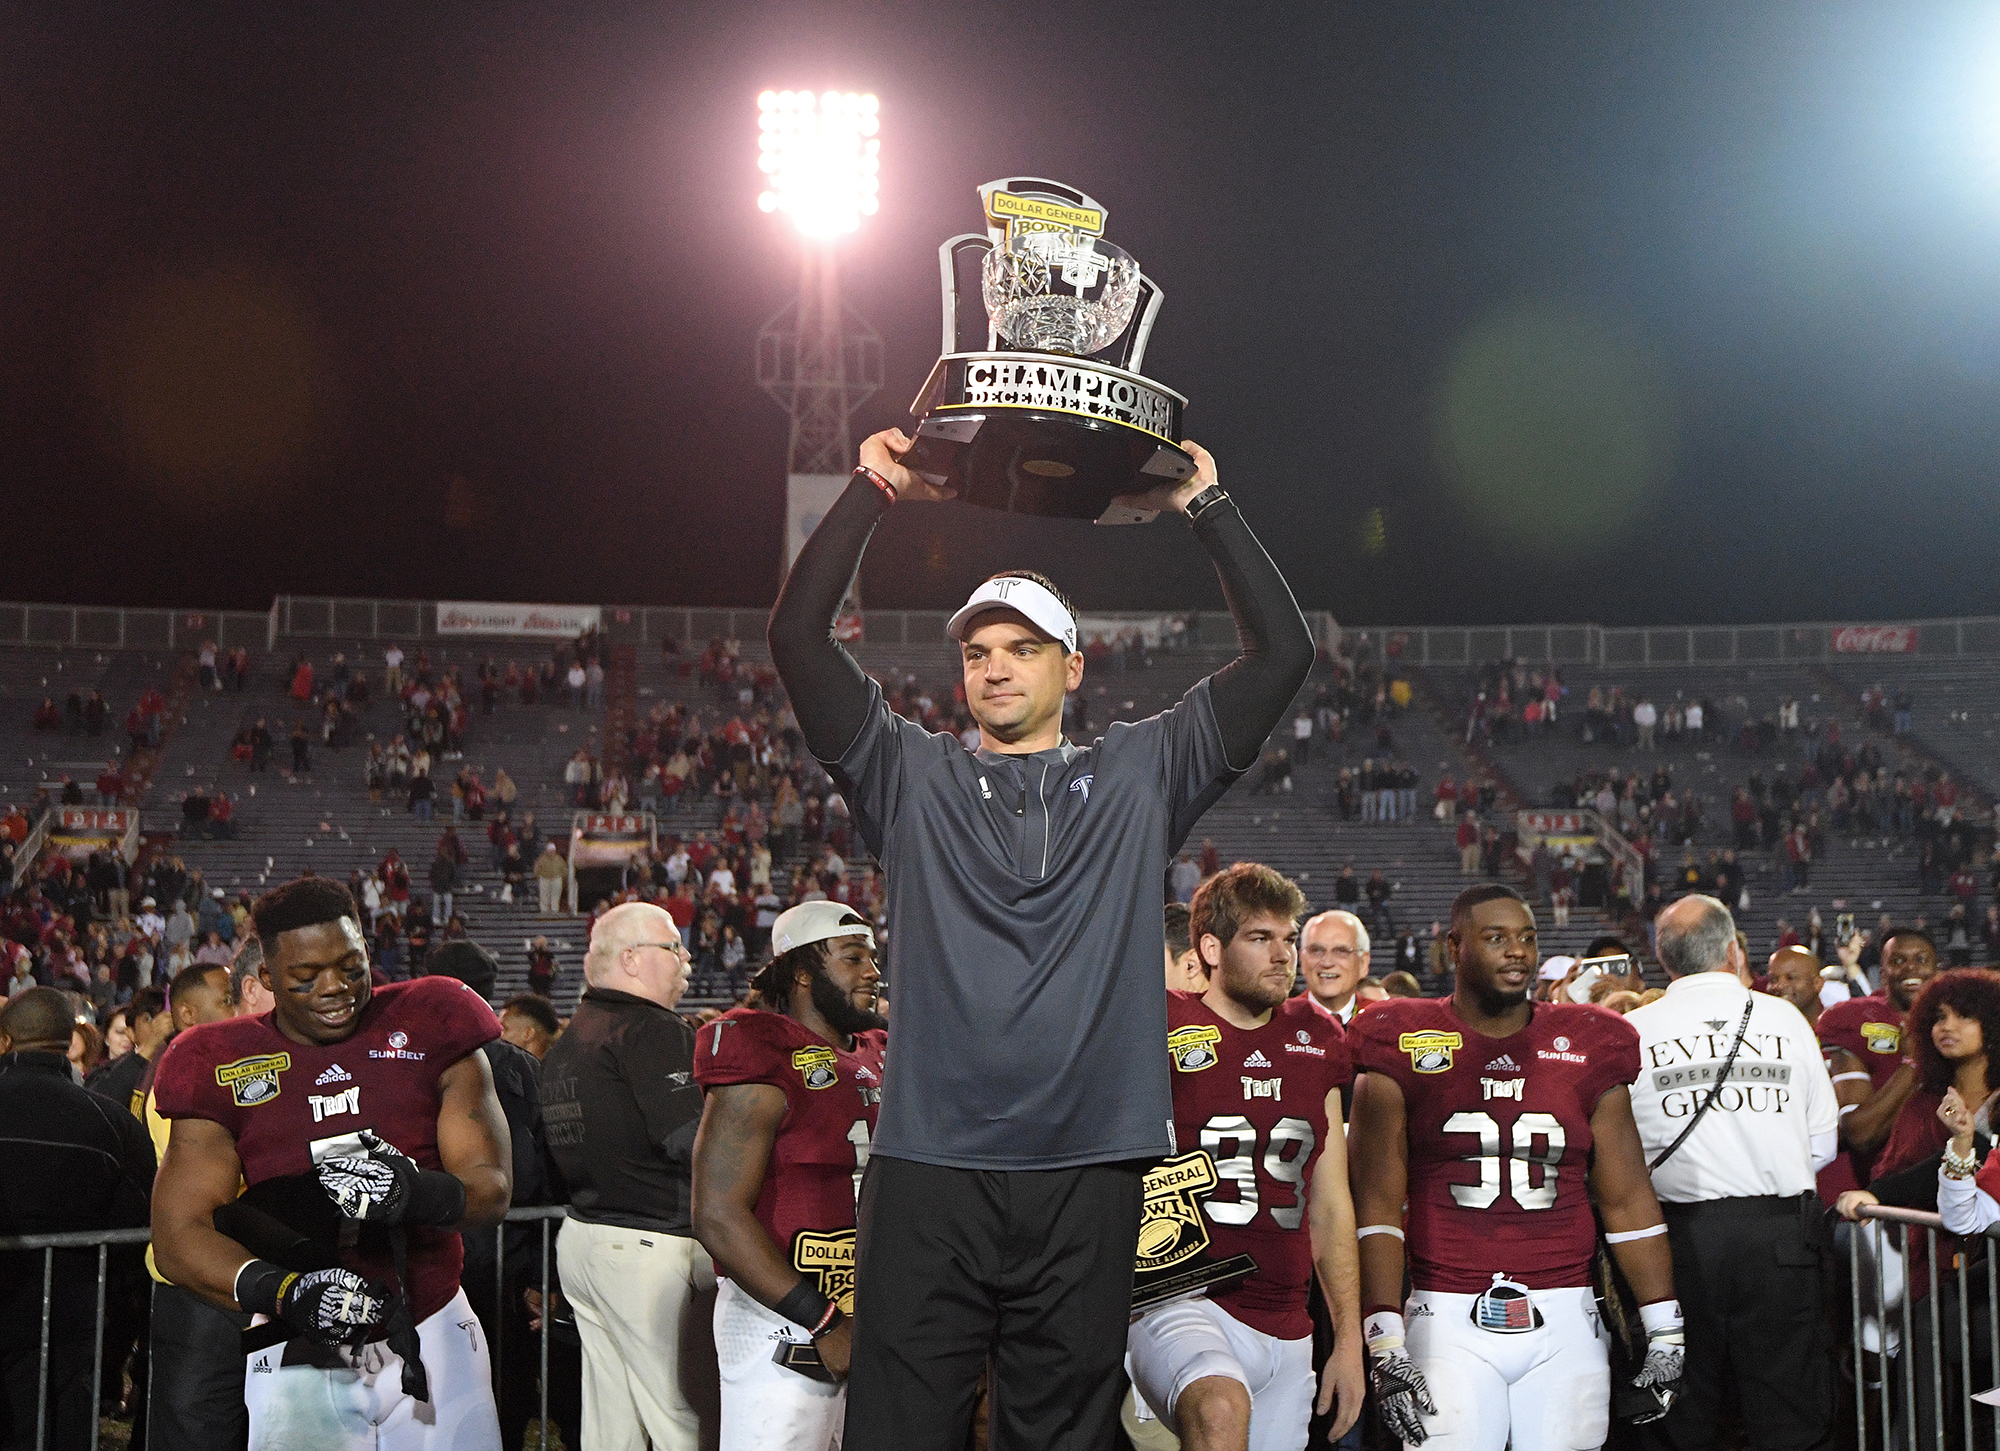 Troy head coach Neal Brown lifts the Champions Trophy after the Dollar General Bowl NCAA college football game against Ohio in Mobile, Ala., Friday, Dec. 23, 2016. Troy won 28-23. (Photo/Thomas Graning)